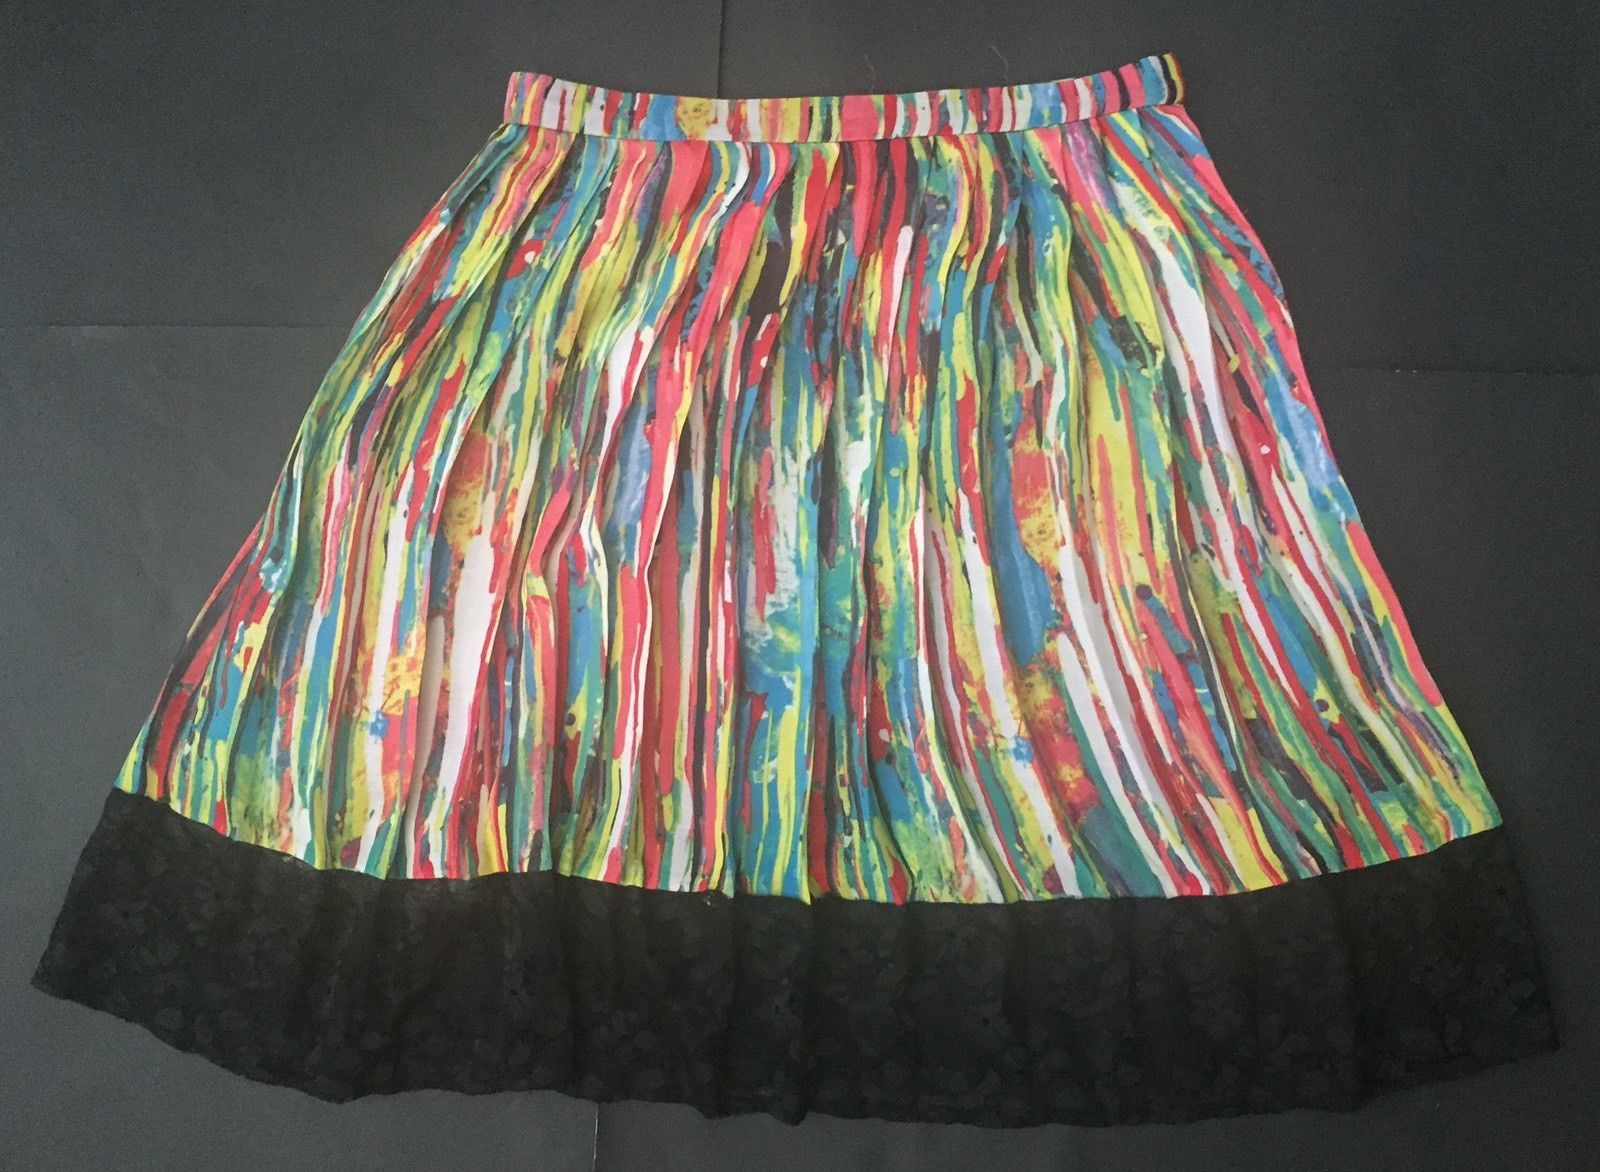 Prabal Gurung For Target Skirt 4 Bright Mulitcolor Black Lace Trim Pleated